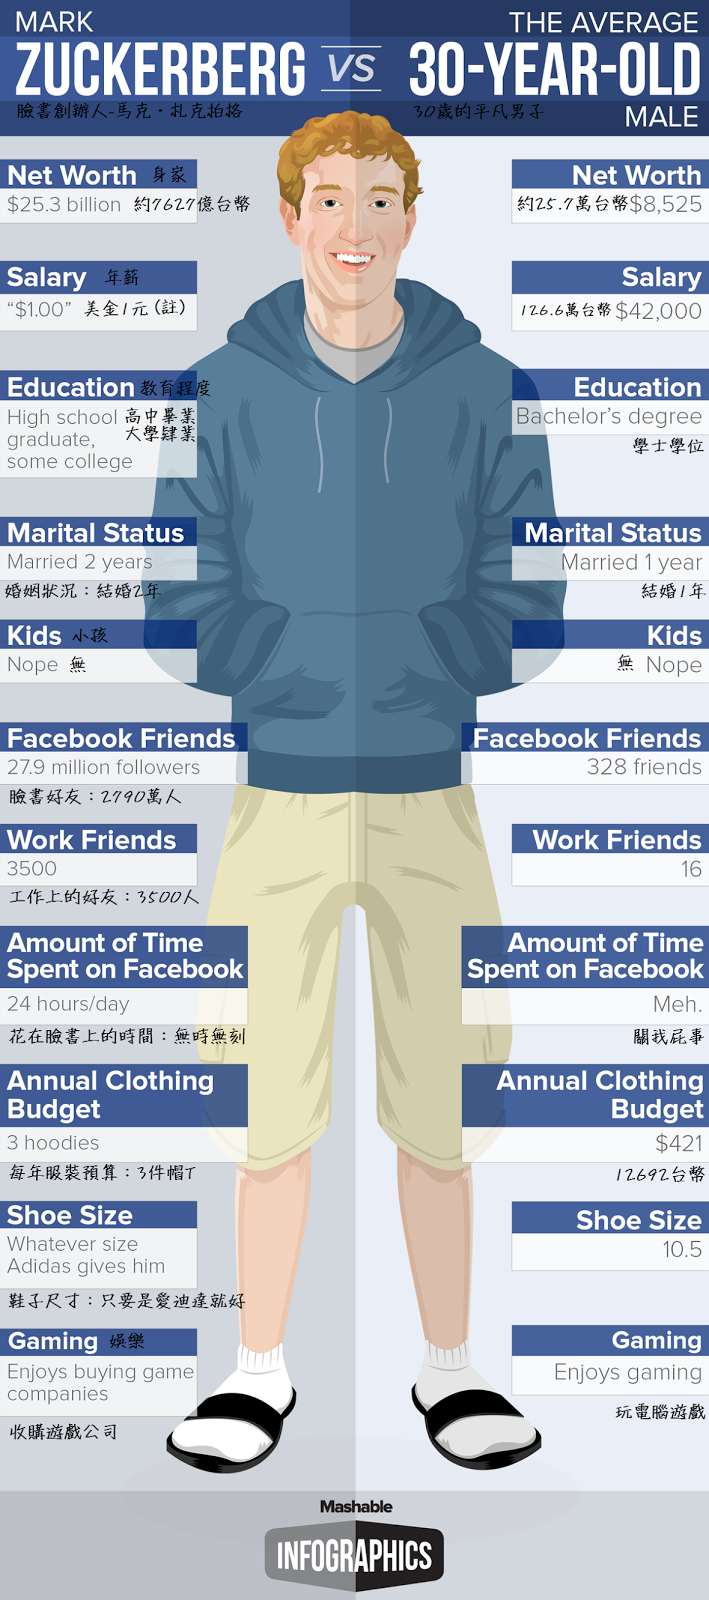 Mark Zuckerberg vs. an Average 30-Year-Old Man#臉書創辦人與30歲平凡人